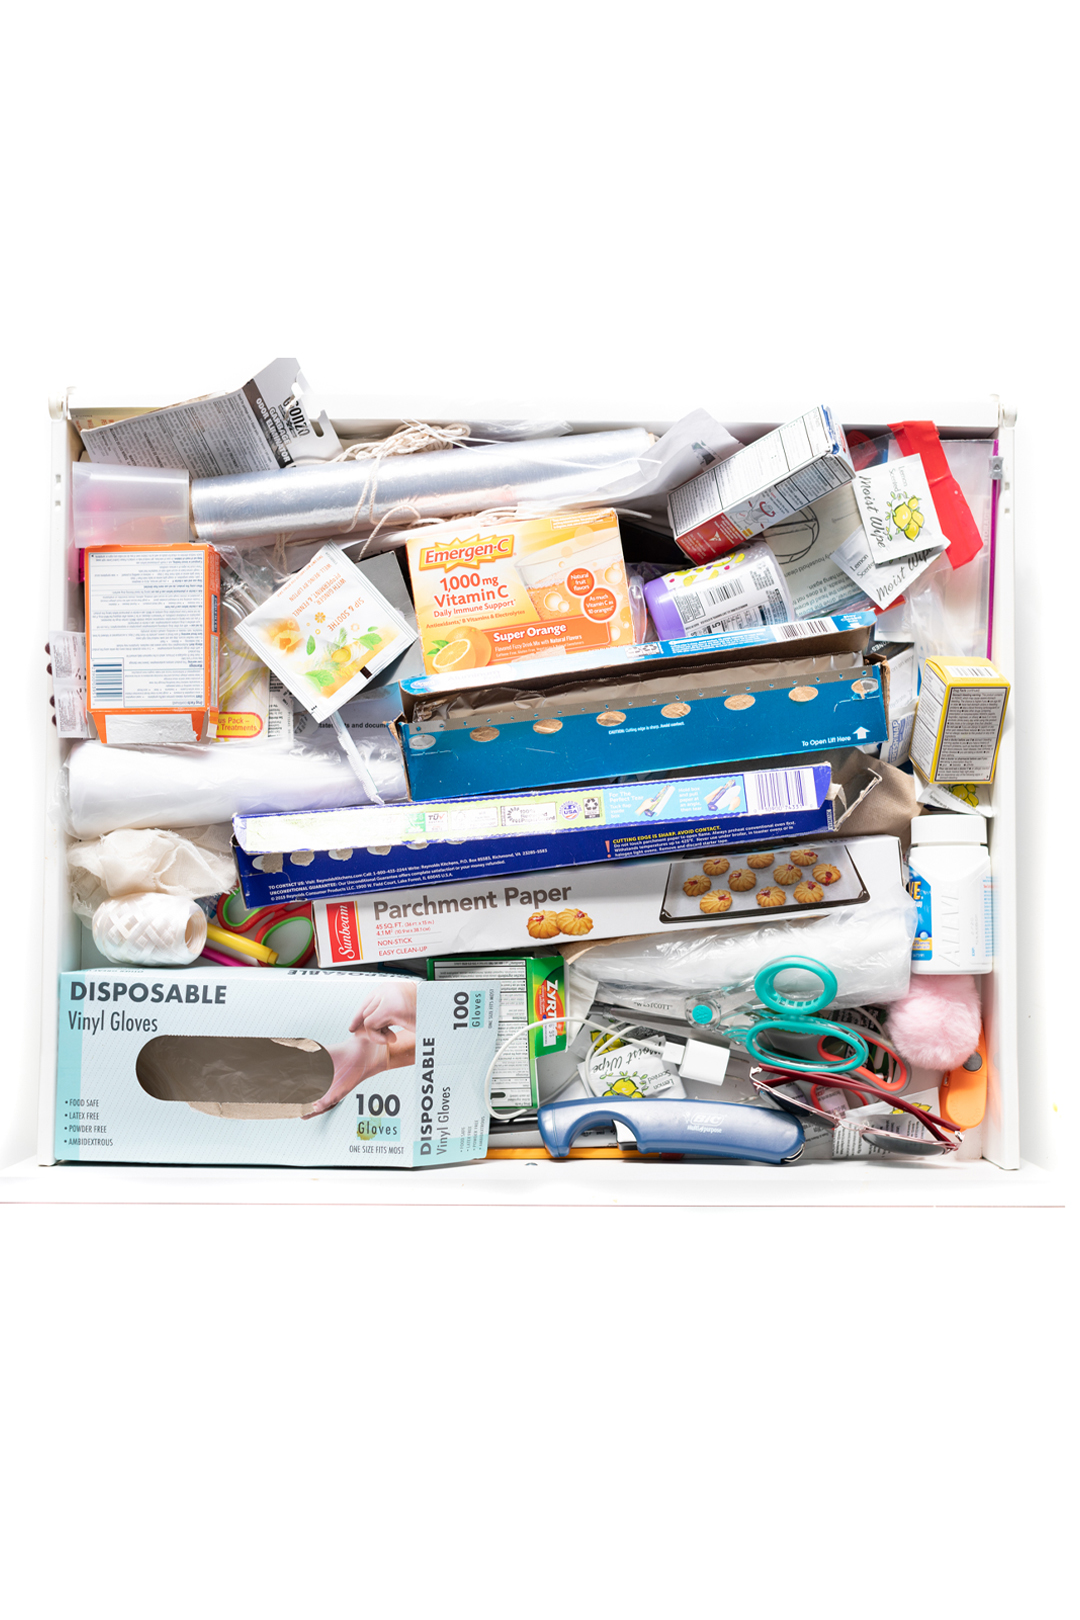 messy junk drawer with a variety of random items stuffed into from medicines to foil.